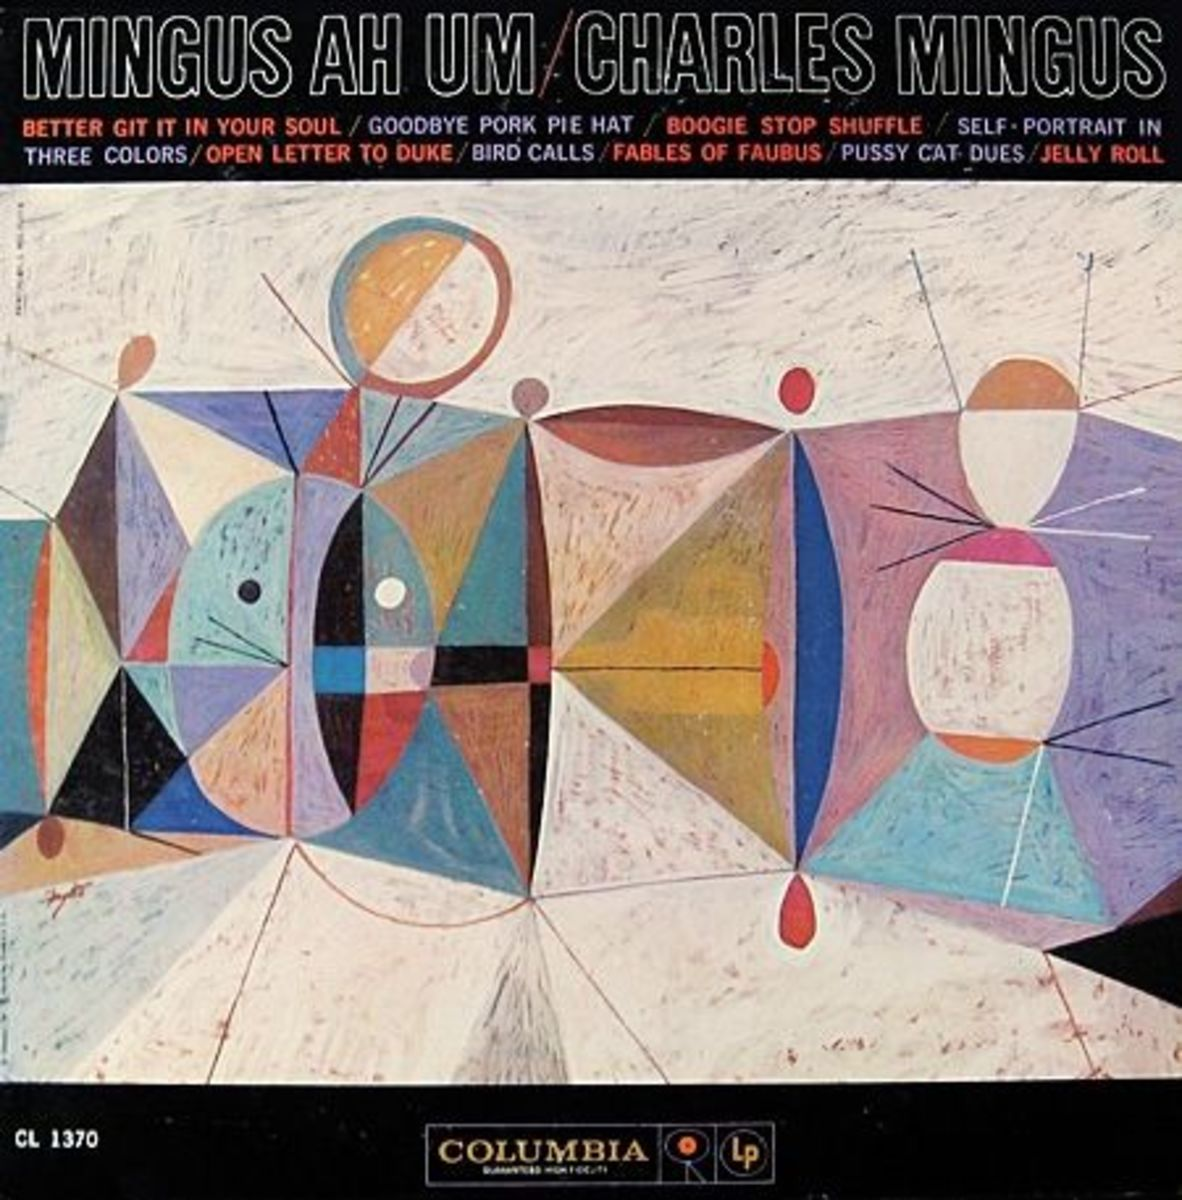 "Charles Mingus ""Ah Um"" Columbia Records CL 1370 12"" LP Vinyl Reocrd (1959) Album Cover Painting by Neil Fujita"